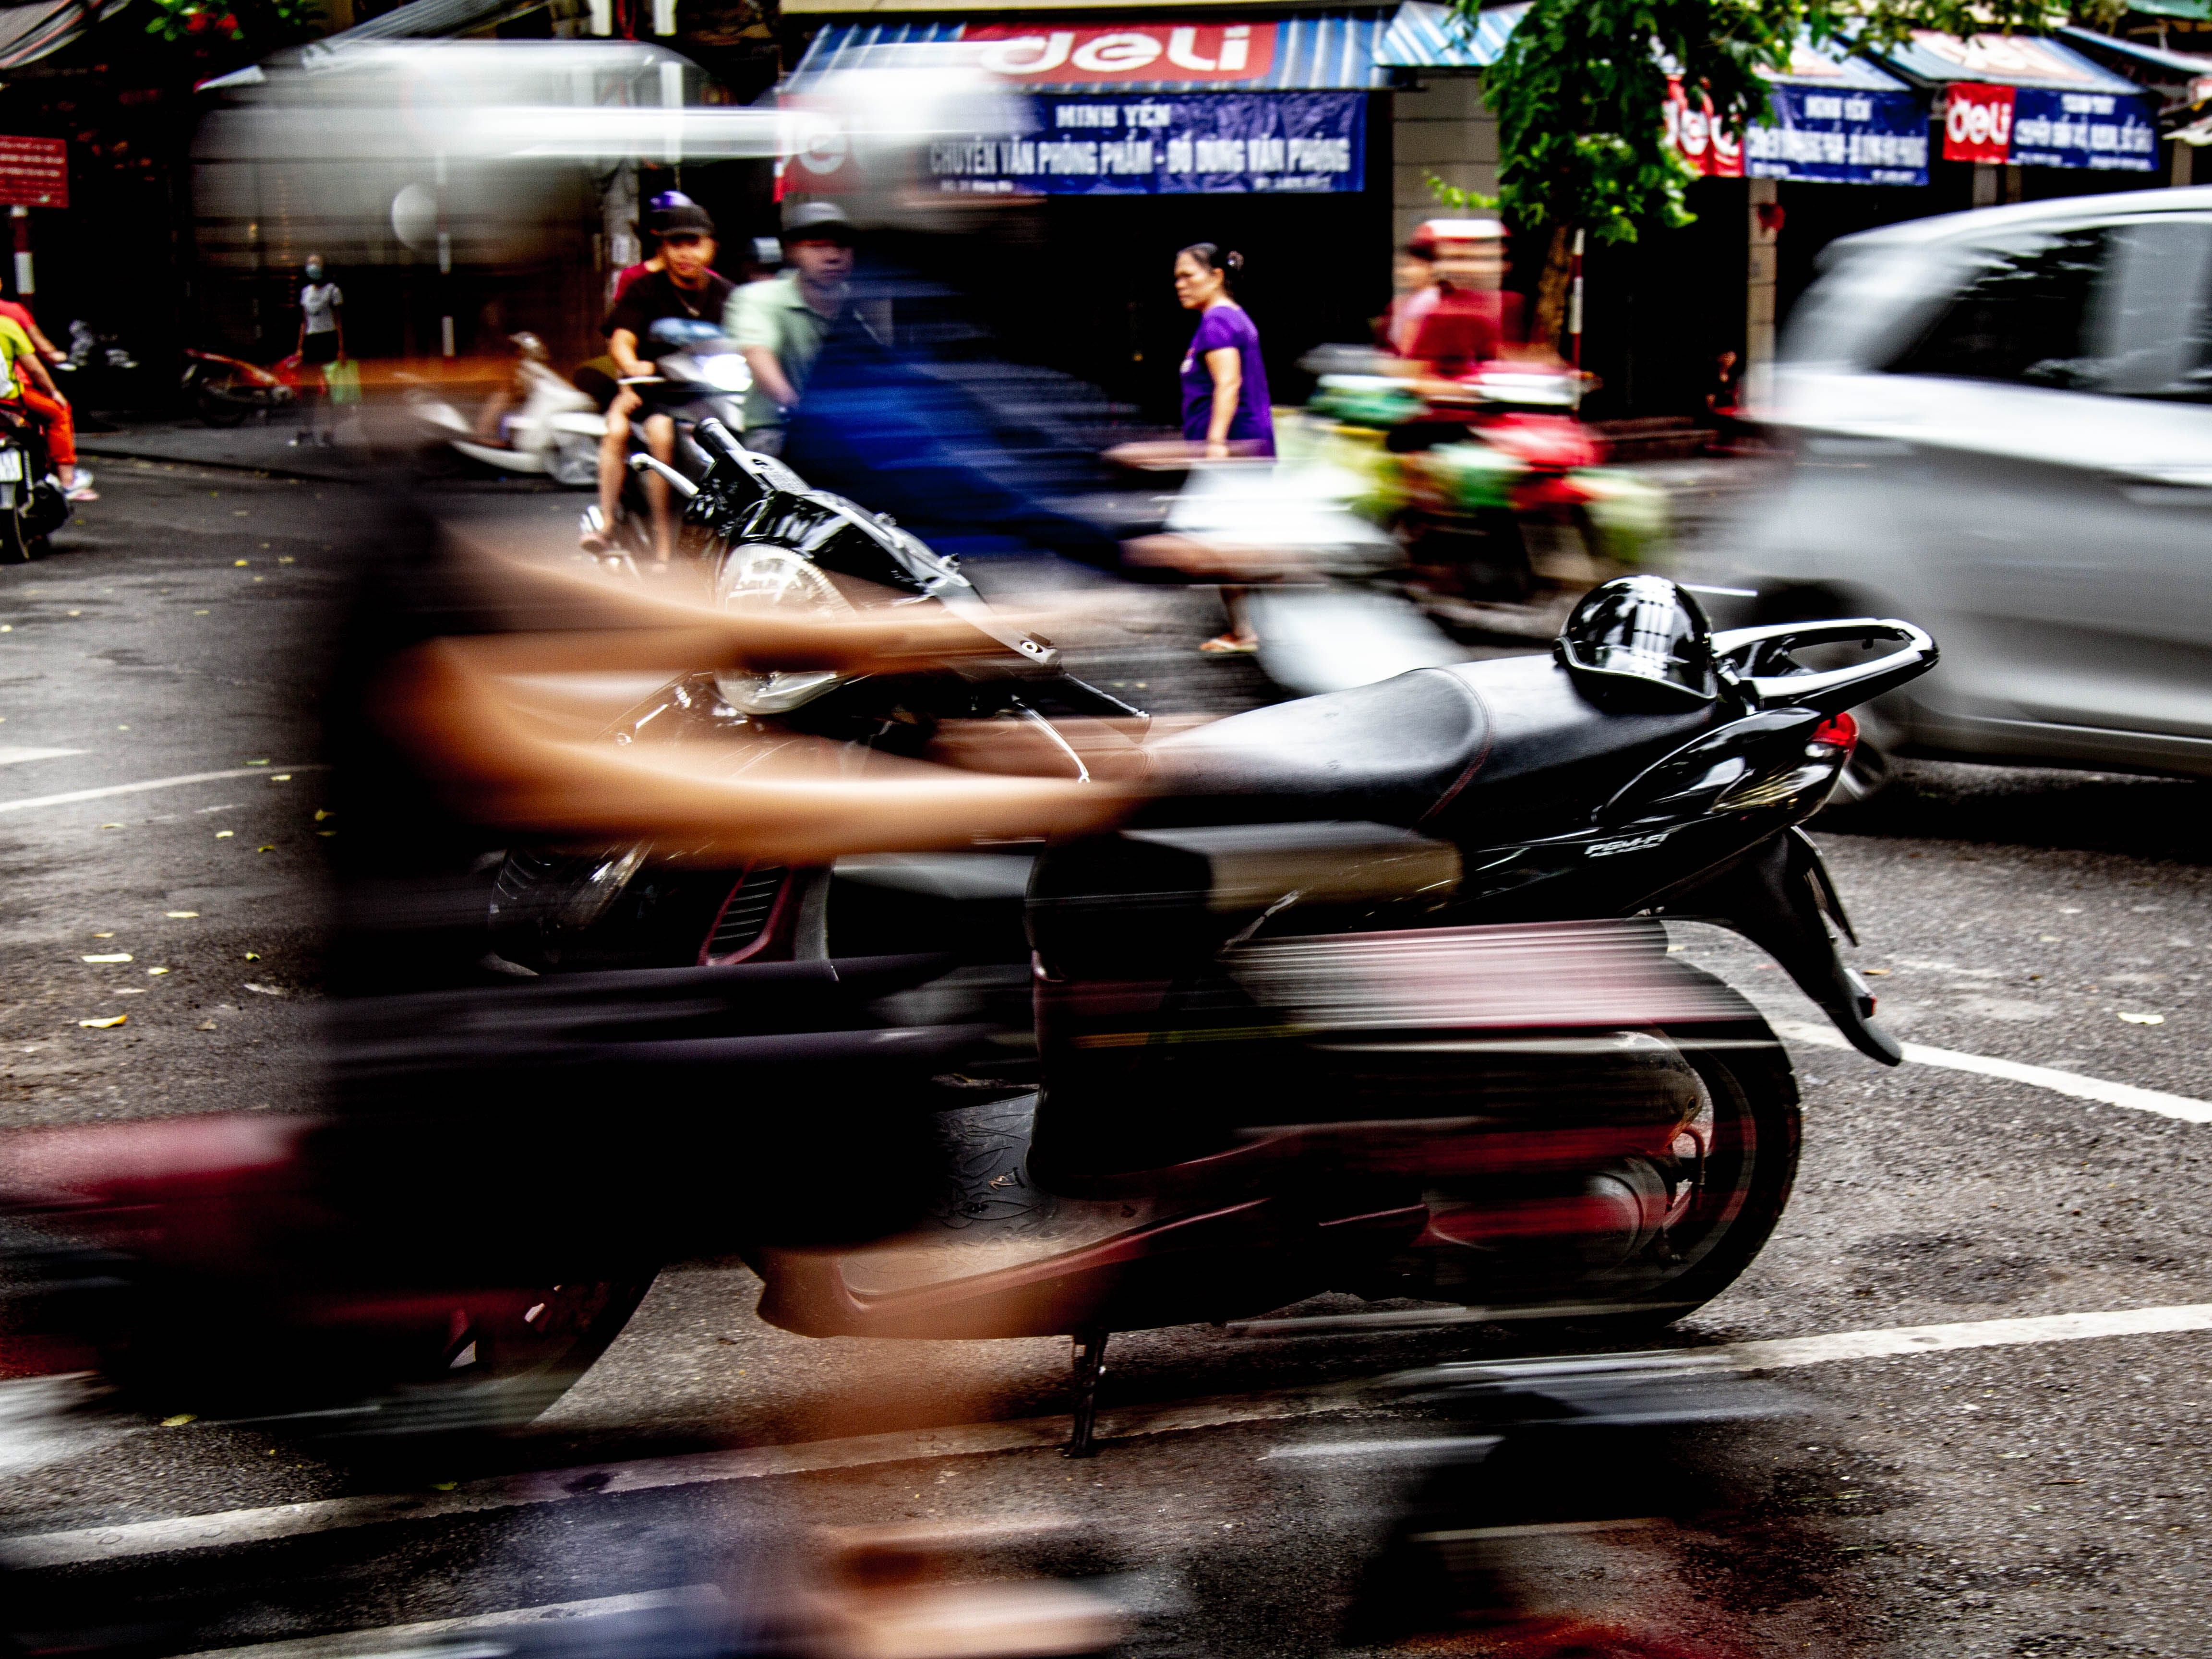 Free stock photo of motion, motor scooter, motor scooters, panning